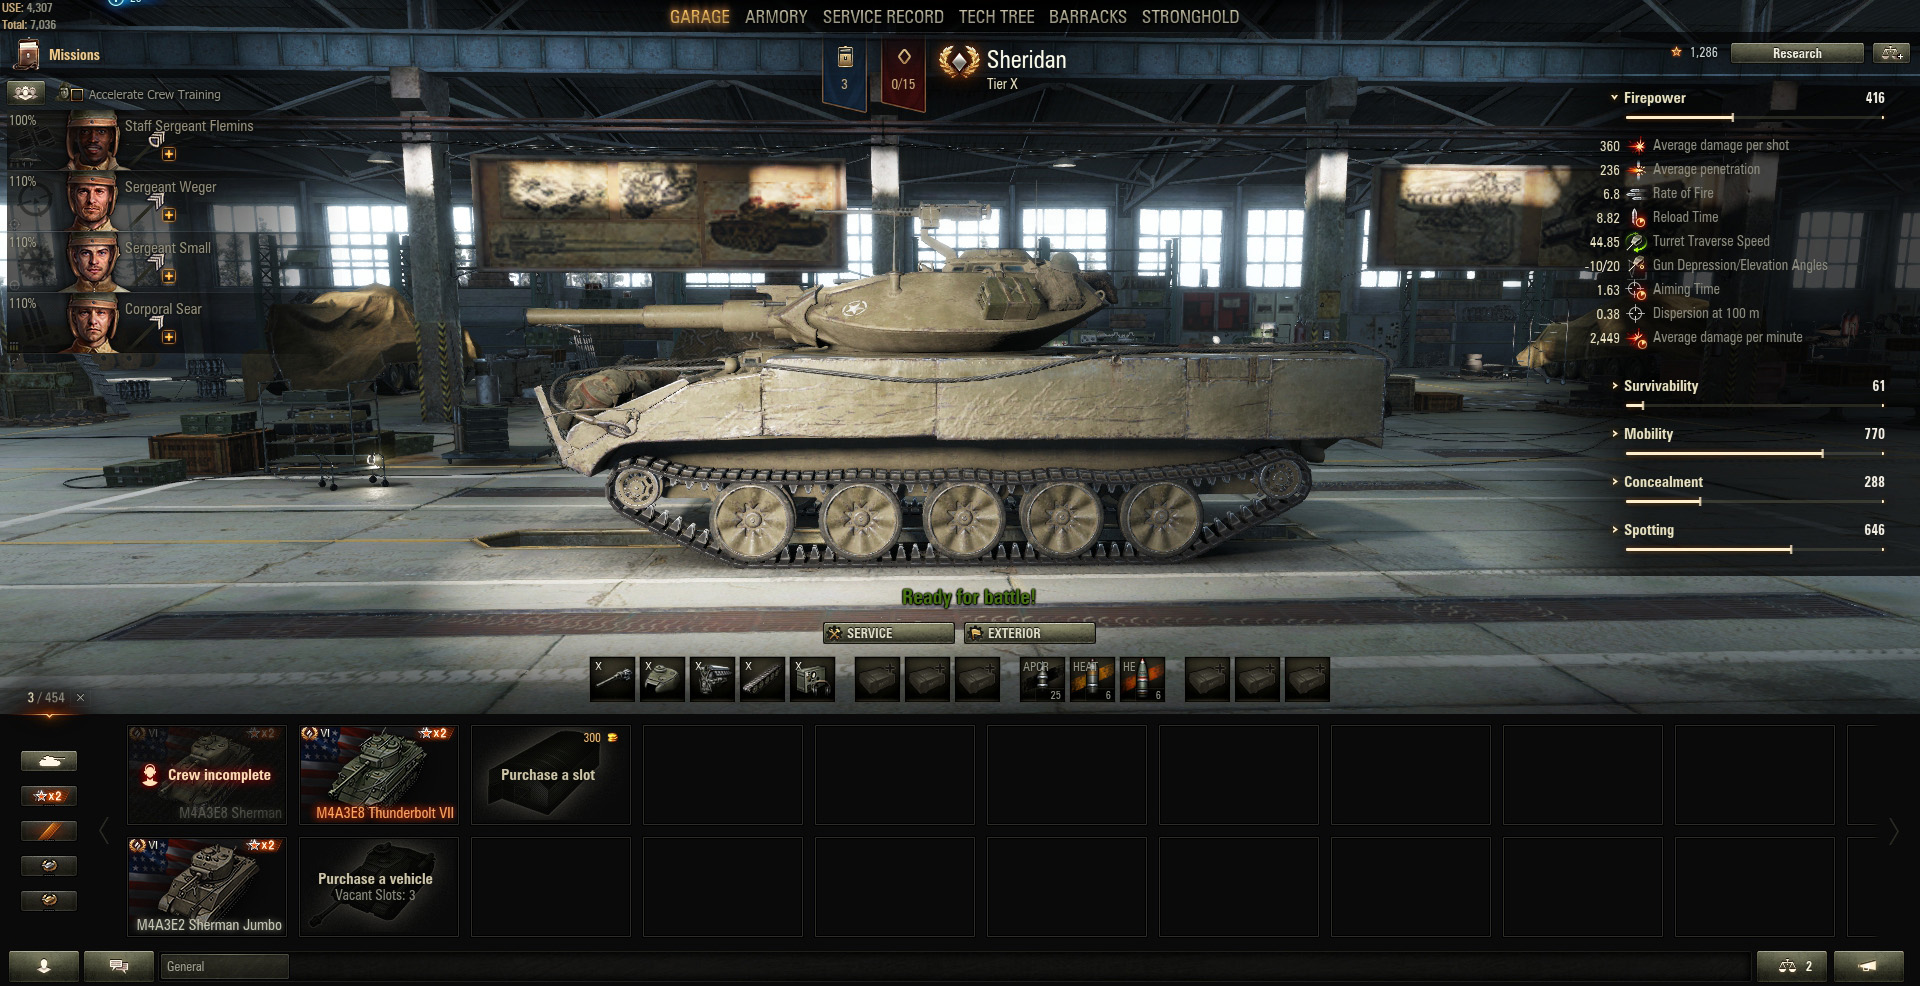 The Sheridan is the recently added Tier 10 Light tank that rounds off the USA Light tank line.